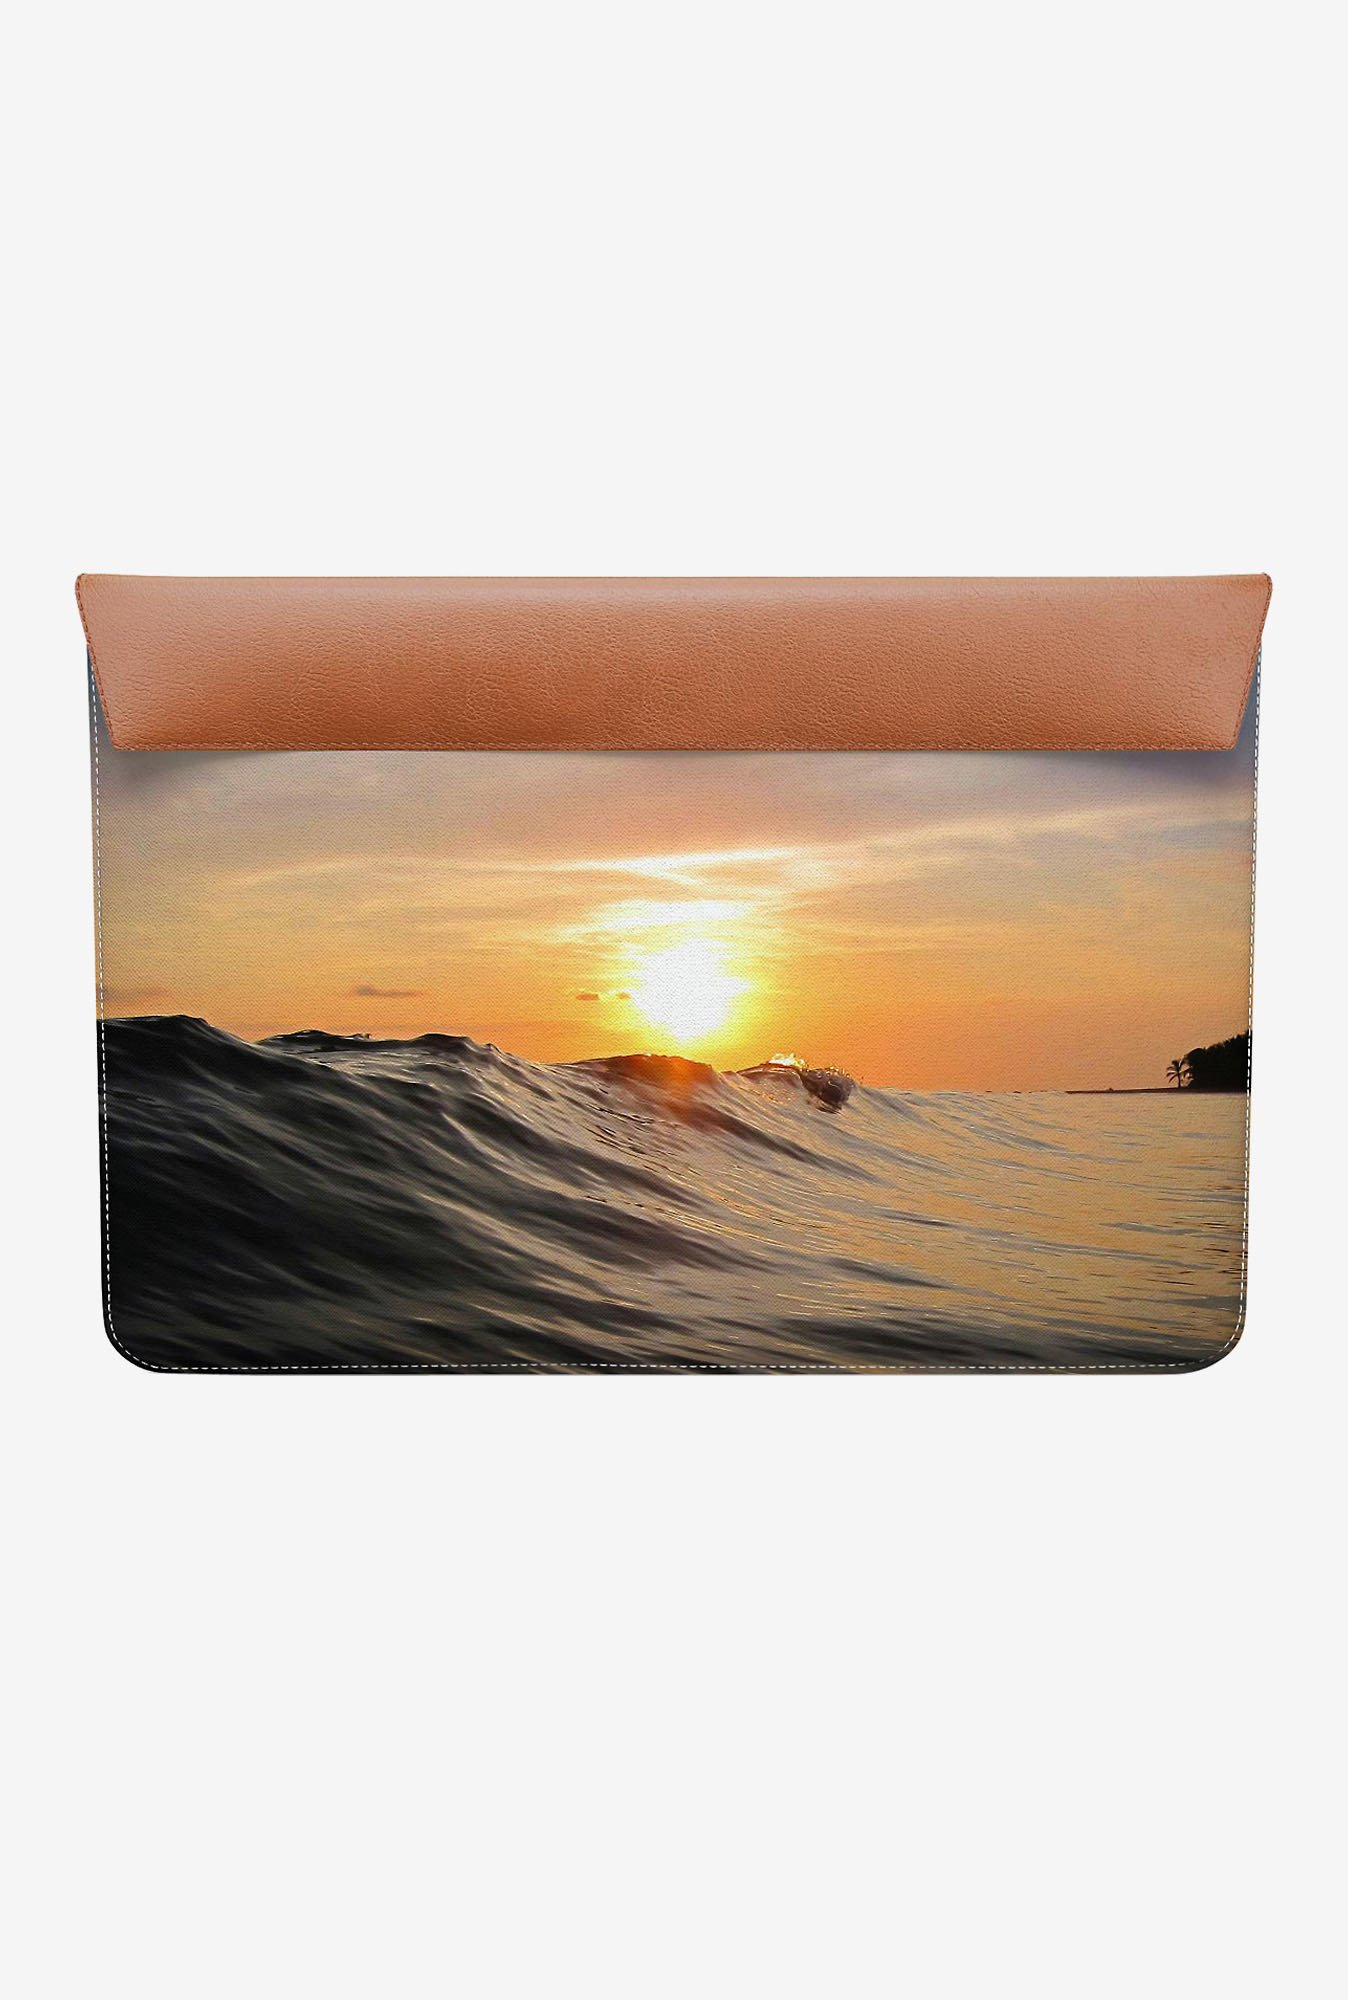 DailyObjects Sunset MacBook Air 13 Envelope Sleeve